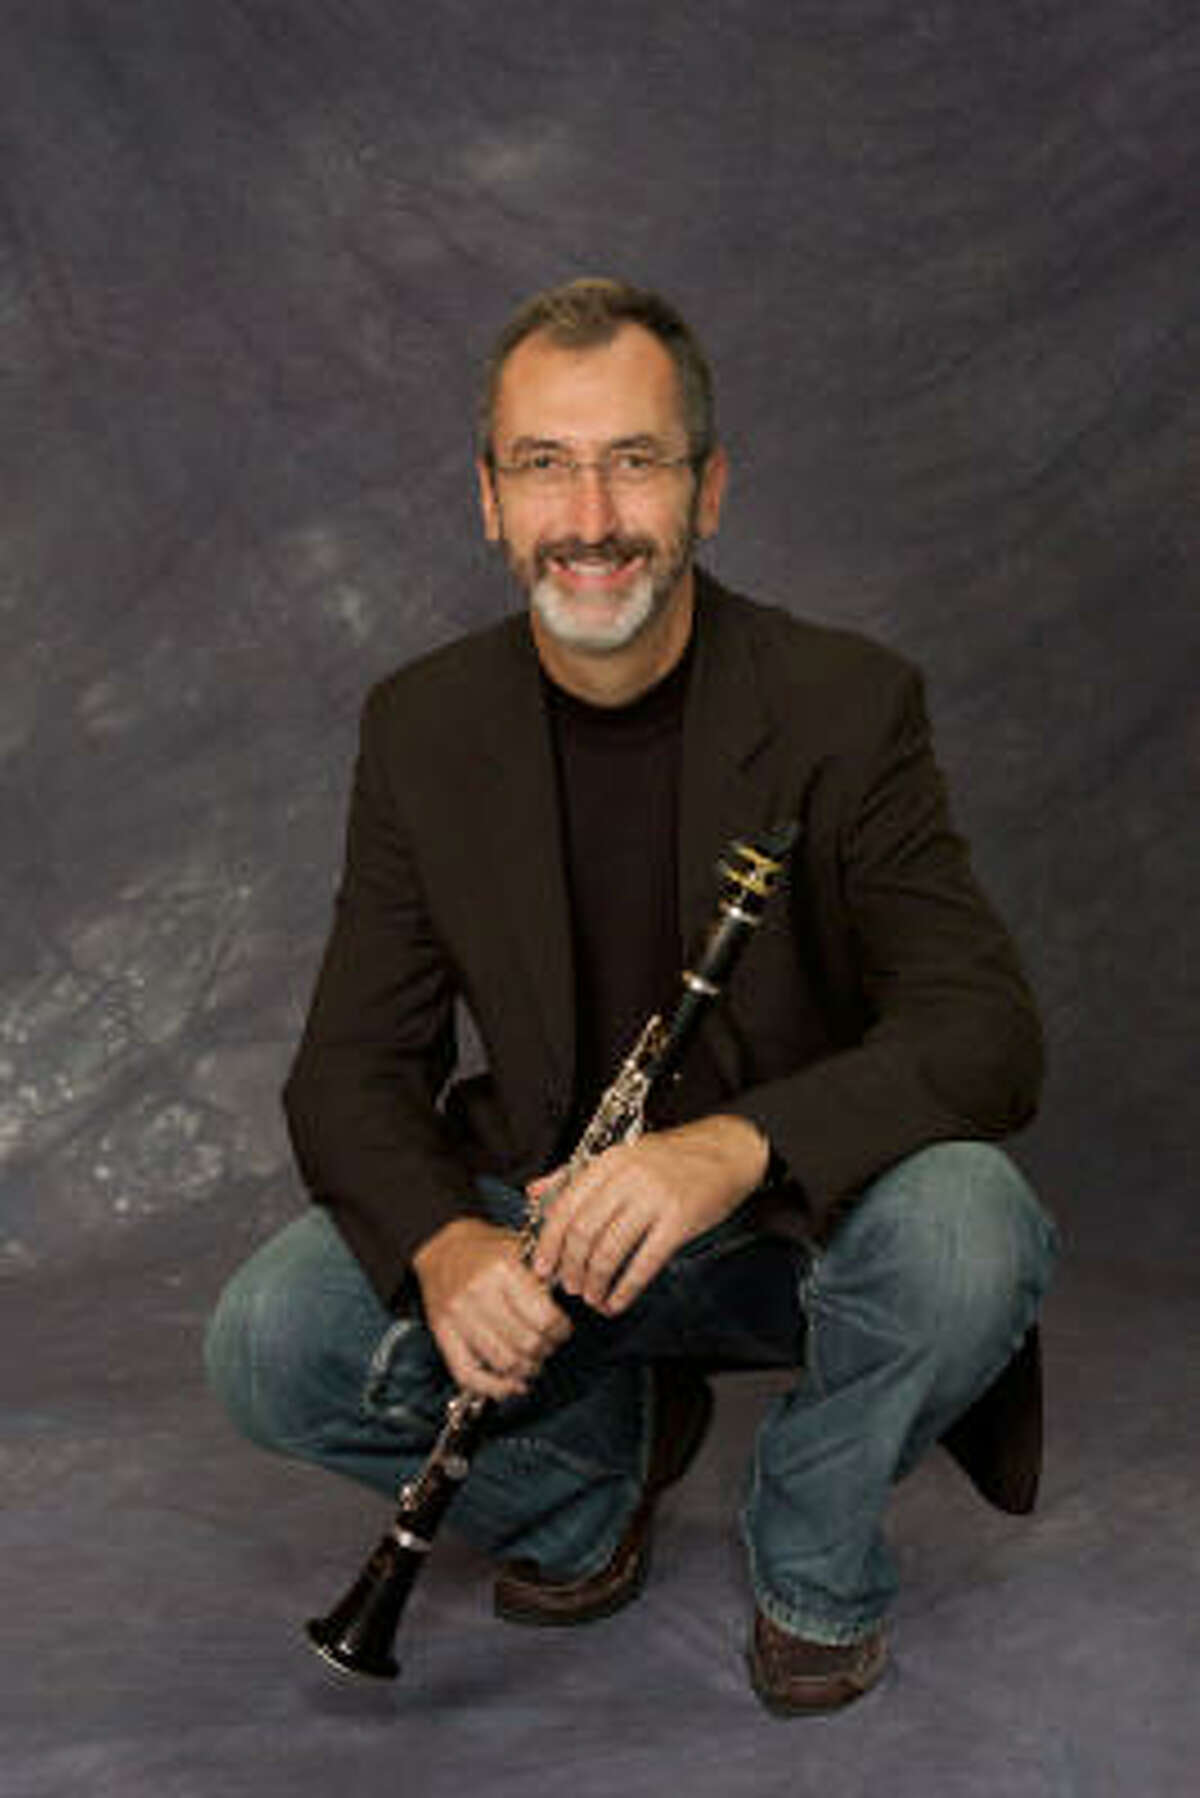 Clarinet player Nathan Williams, who teaches at the University of Texas' Butler School of Music, is performing with the River Oaks Chamber Orchestra in Houston.